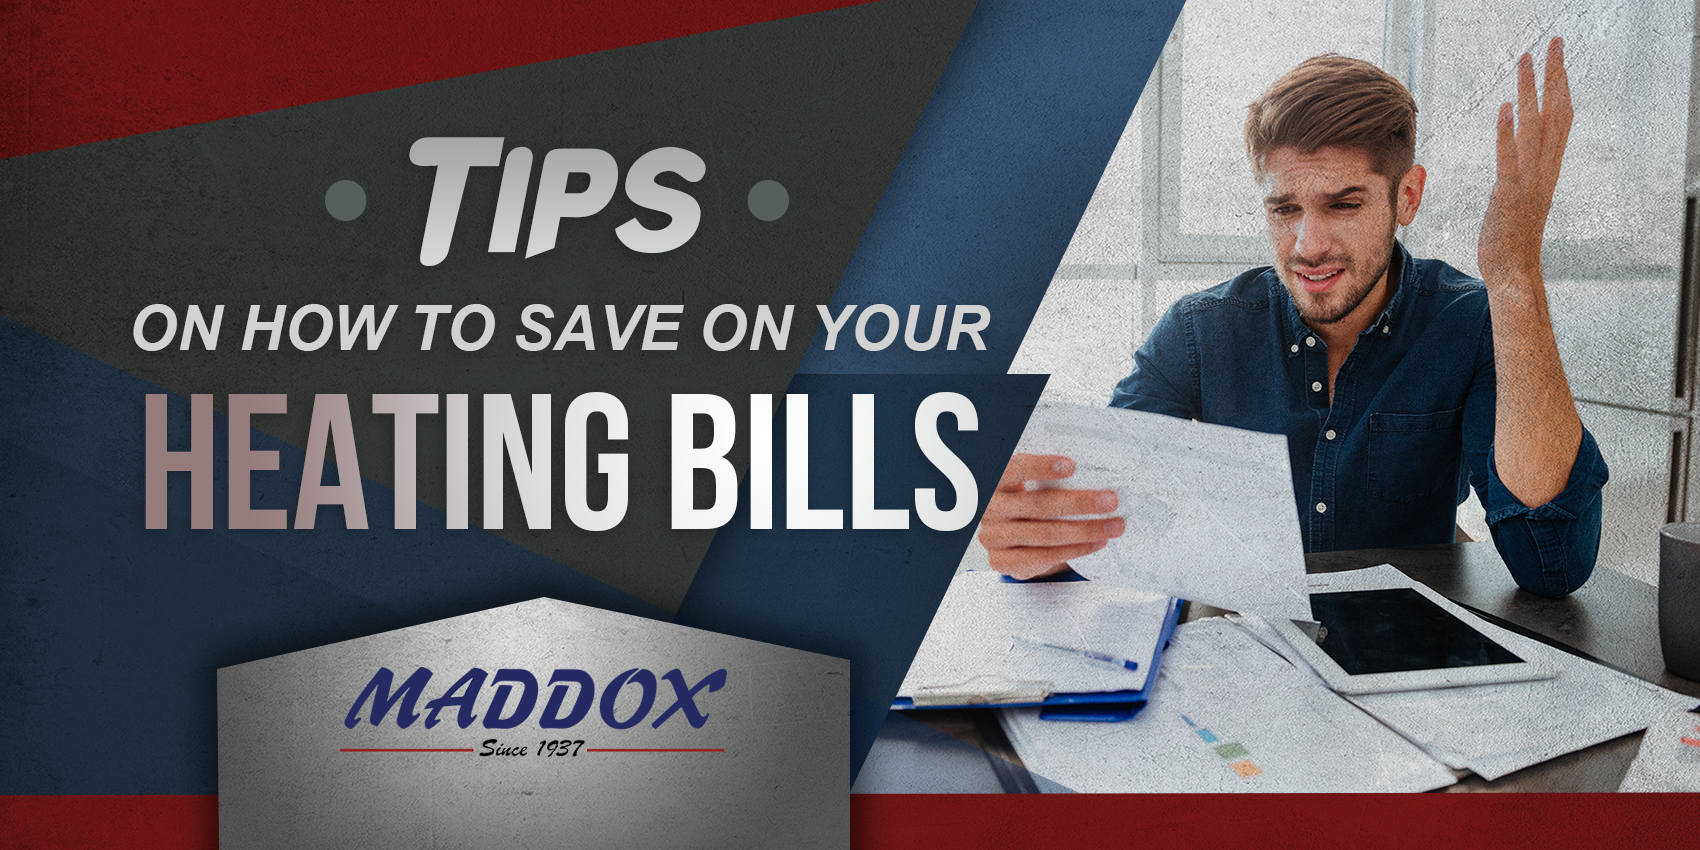 Tips On How to Save On Your Heating Bills